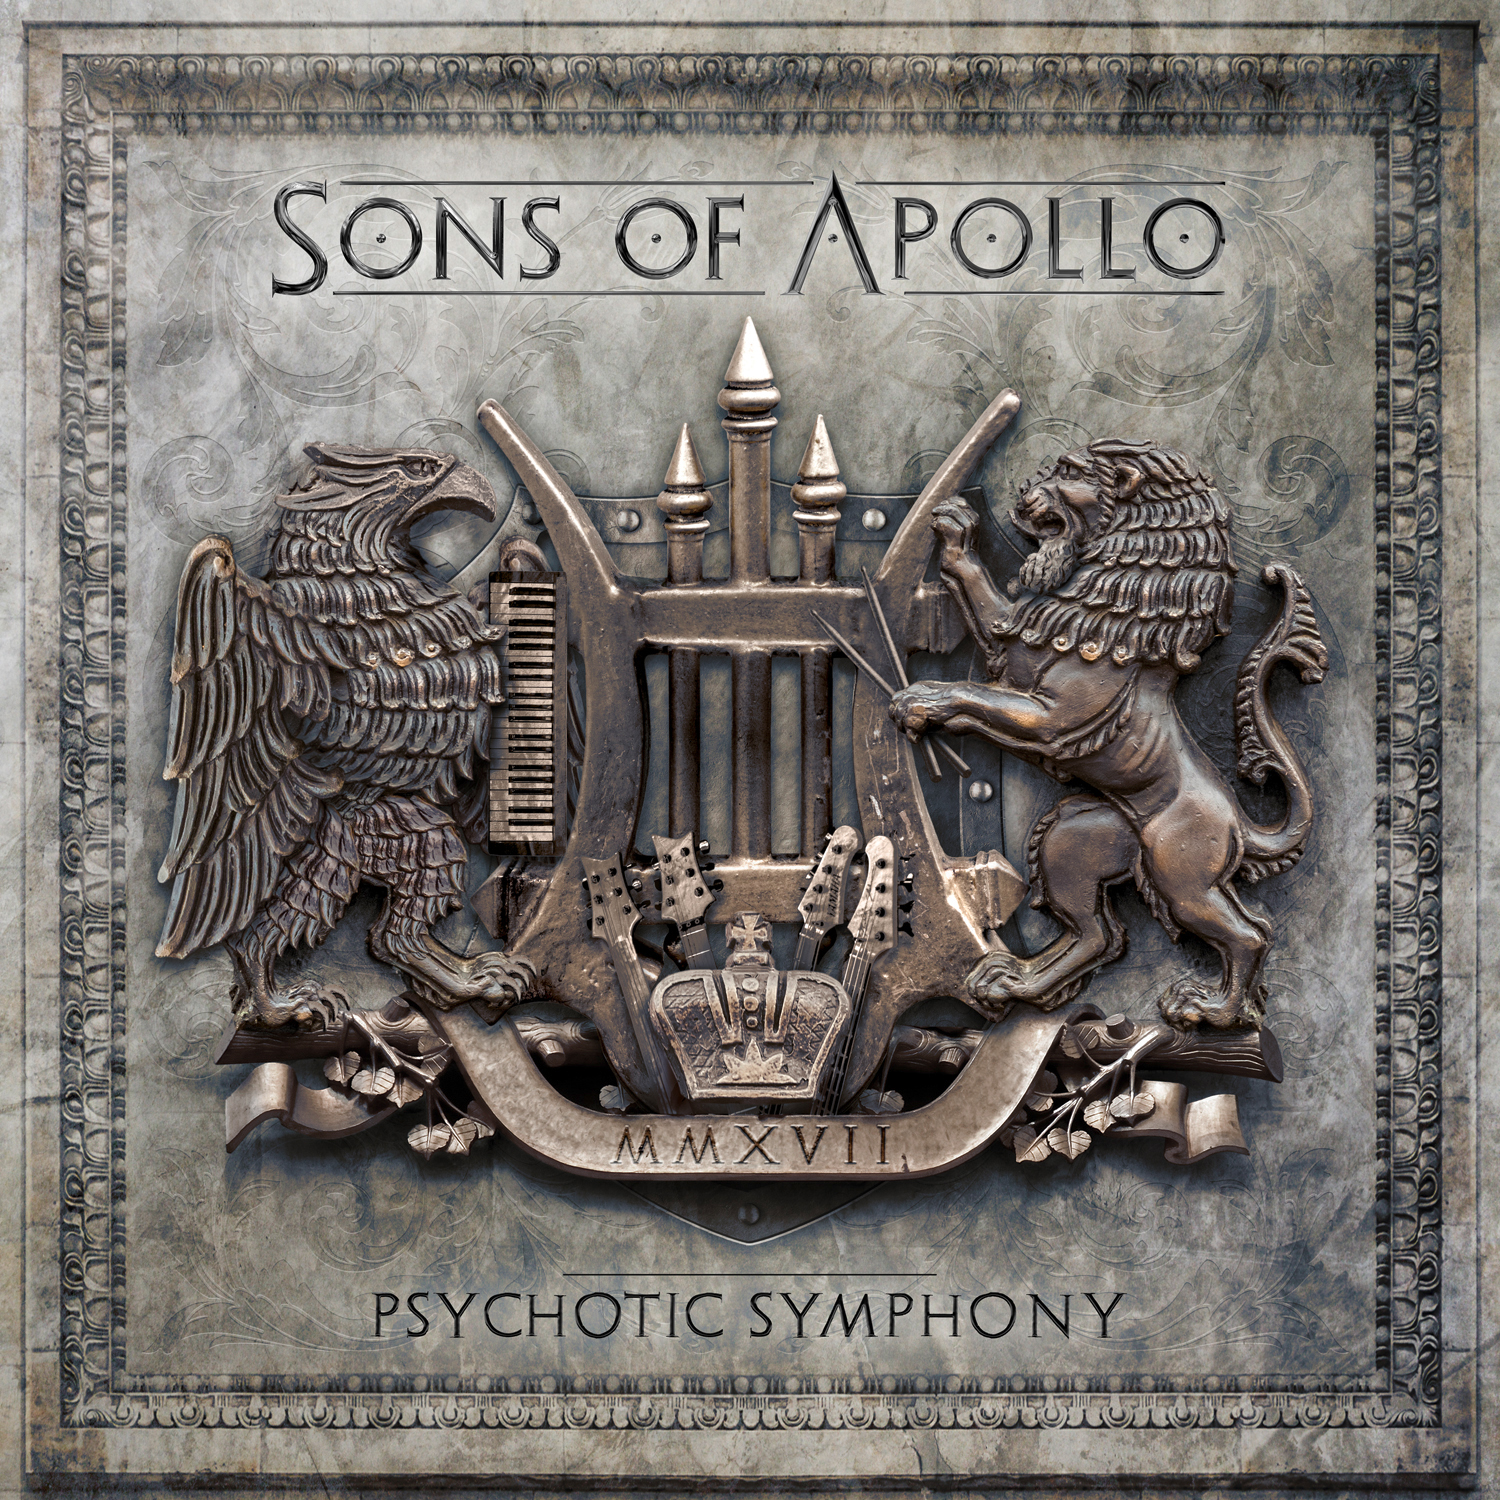 Sons of Apollo's Psychotic Symphony: An Exercise in Banality